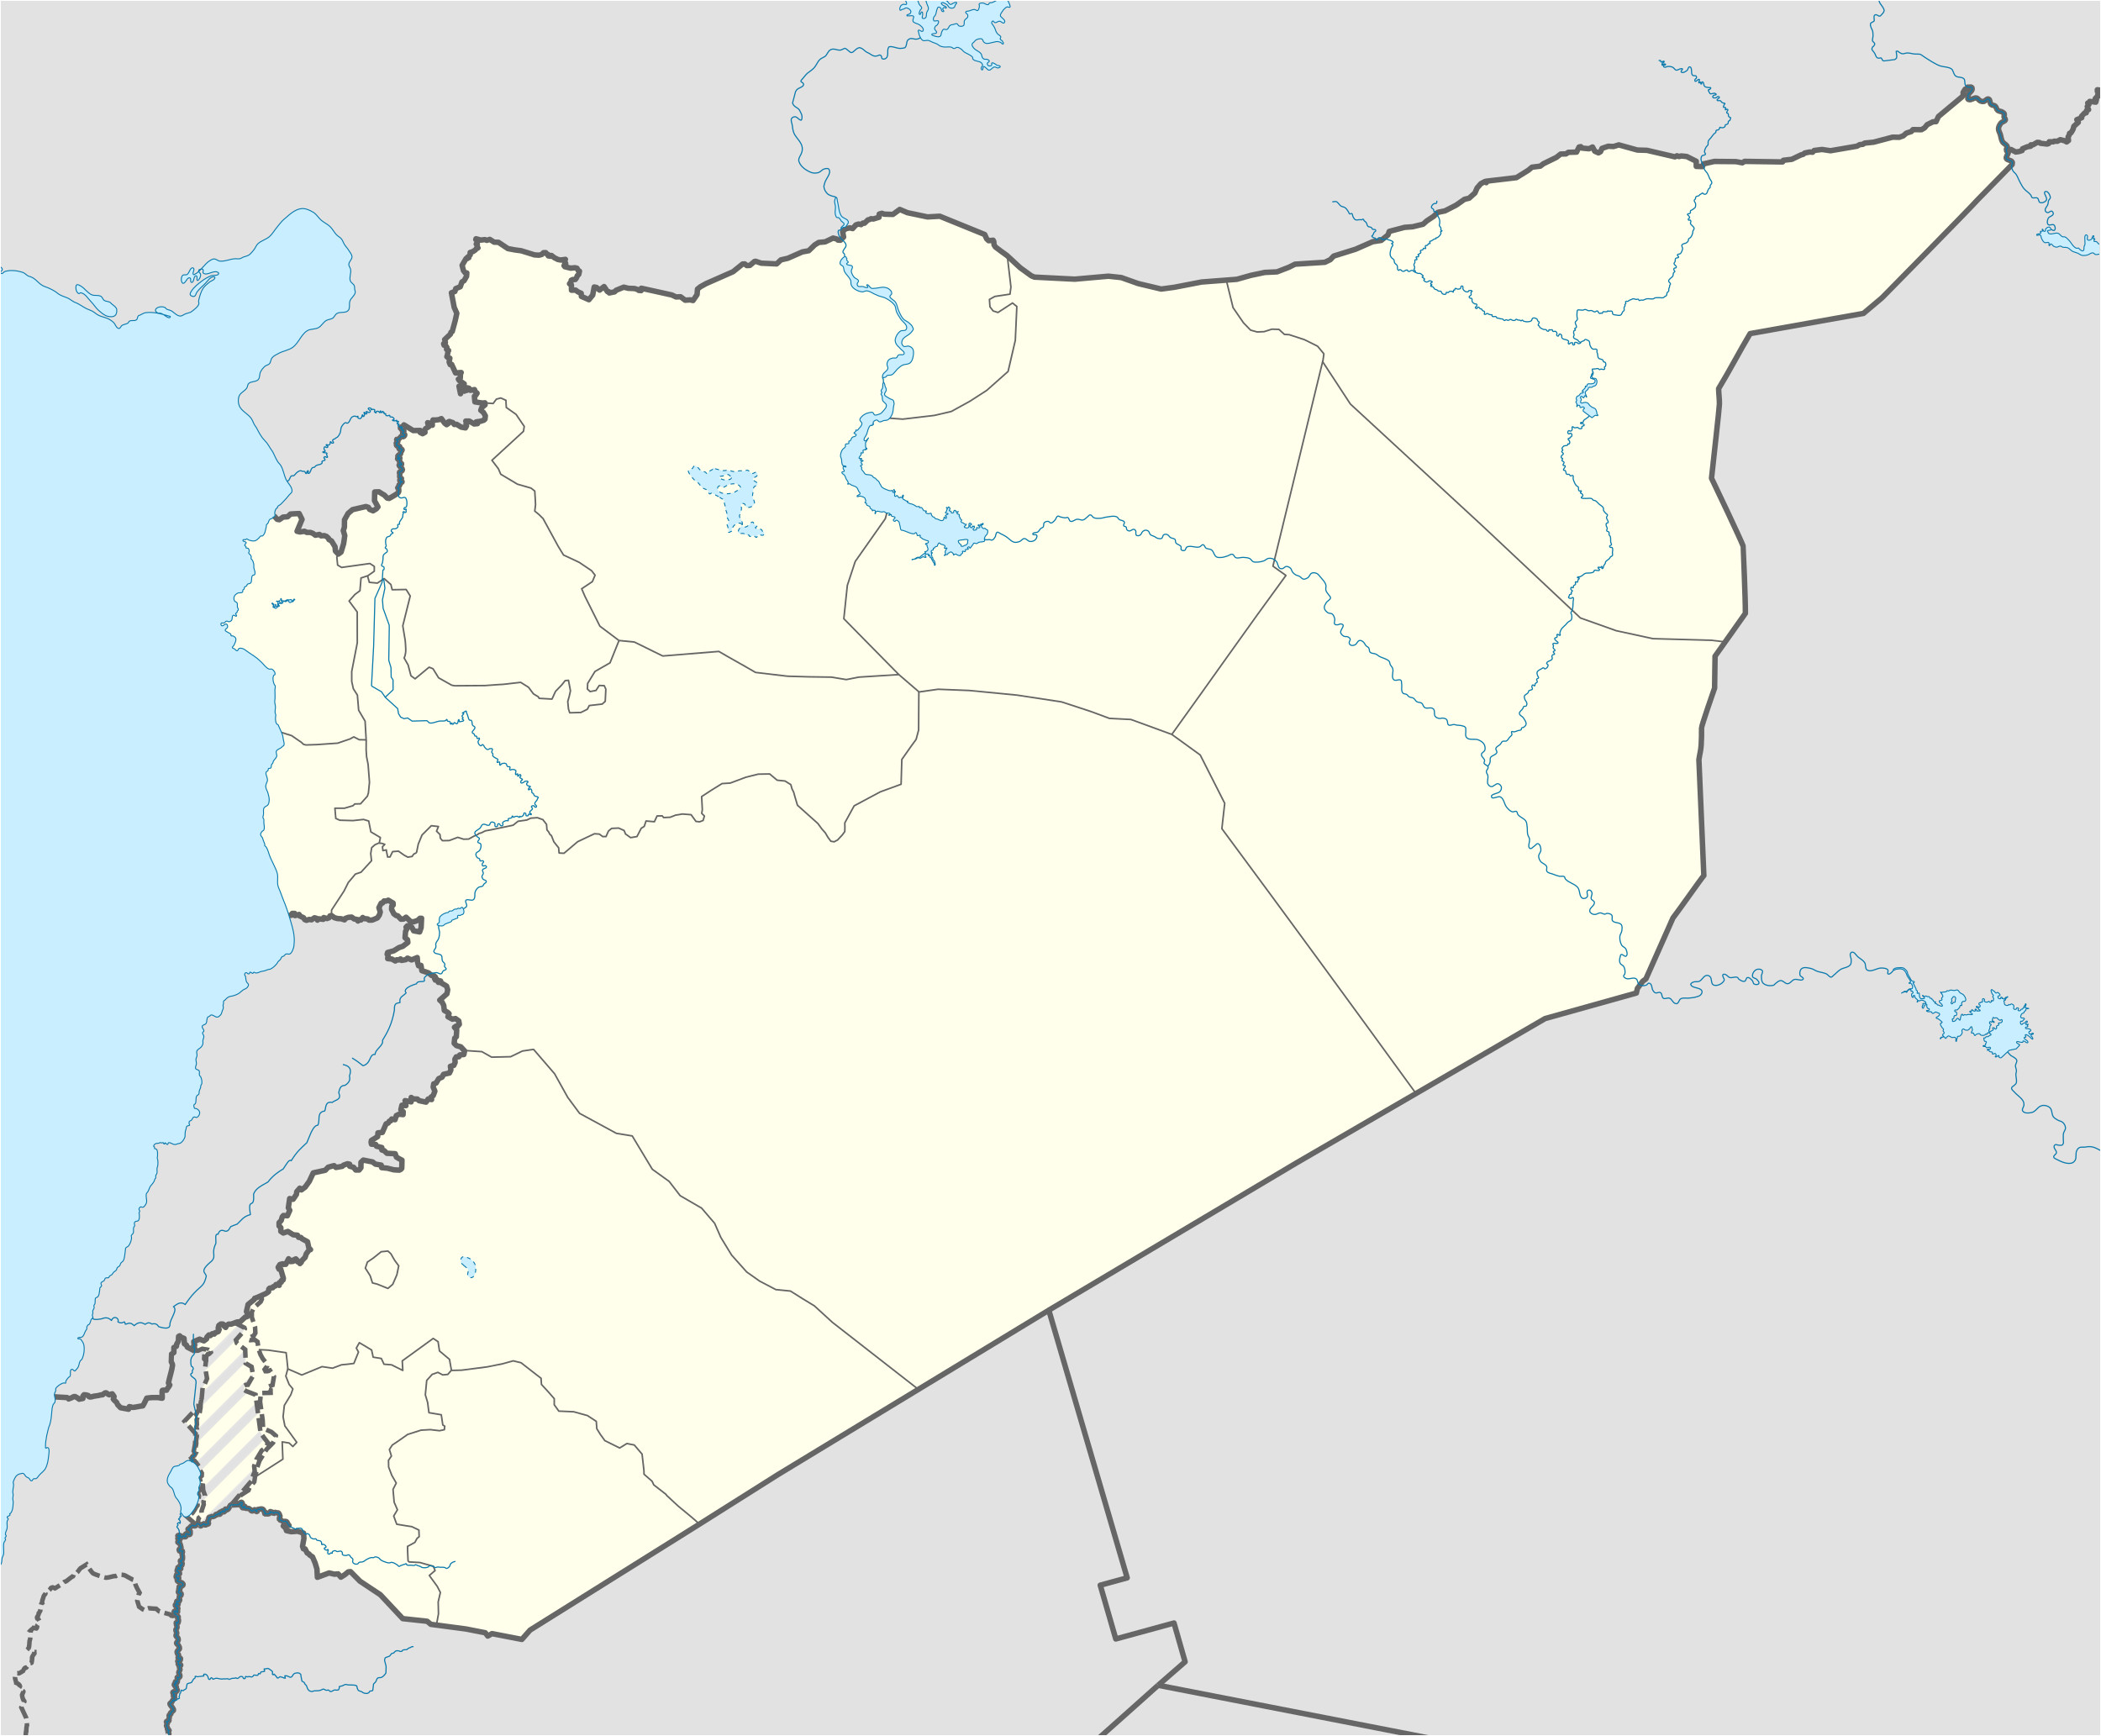 Syria War Template Template Syrian Civil War Detailed Map Wikipedia